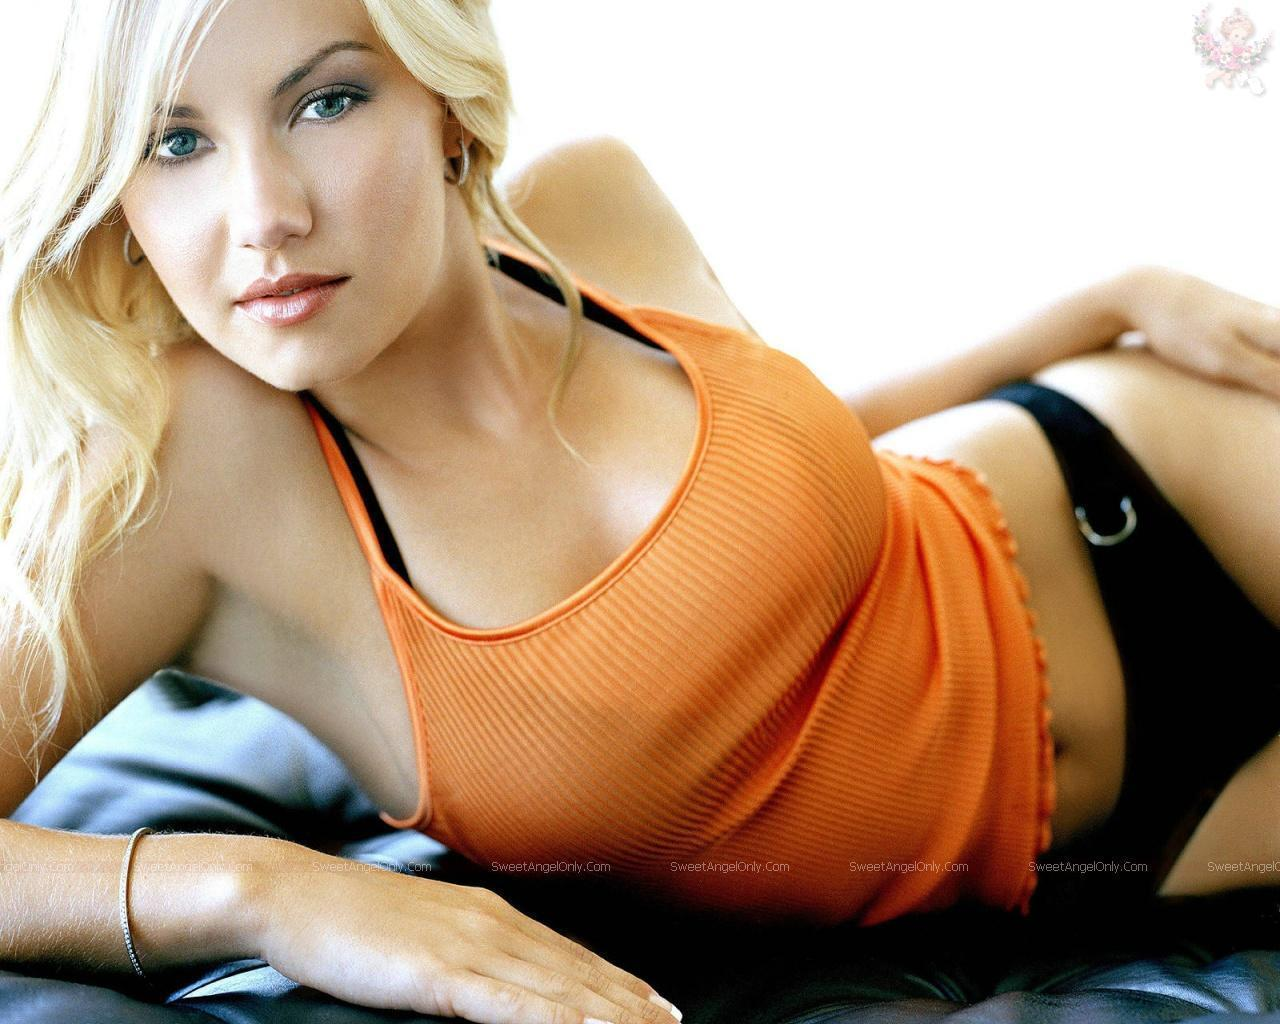 http://4.bp.blogspot.com/_-aLgbcBKmvc/TTGSmpbuT7I/AAAAAAAAEYg/NylRouwHEWM/s1600/elisha_cuthbert-in-a-still-of-her-film-wallpapers_10.jpg